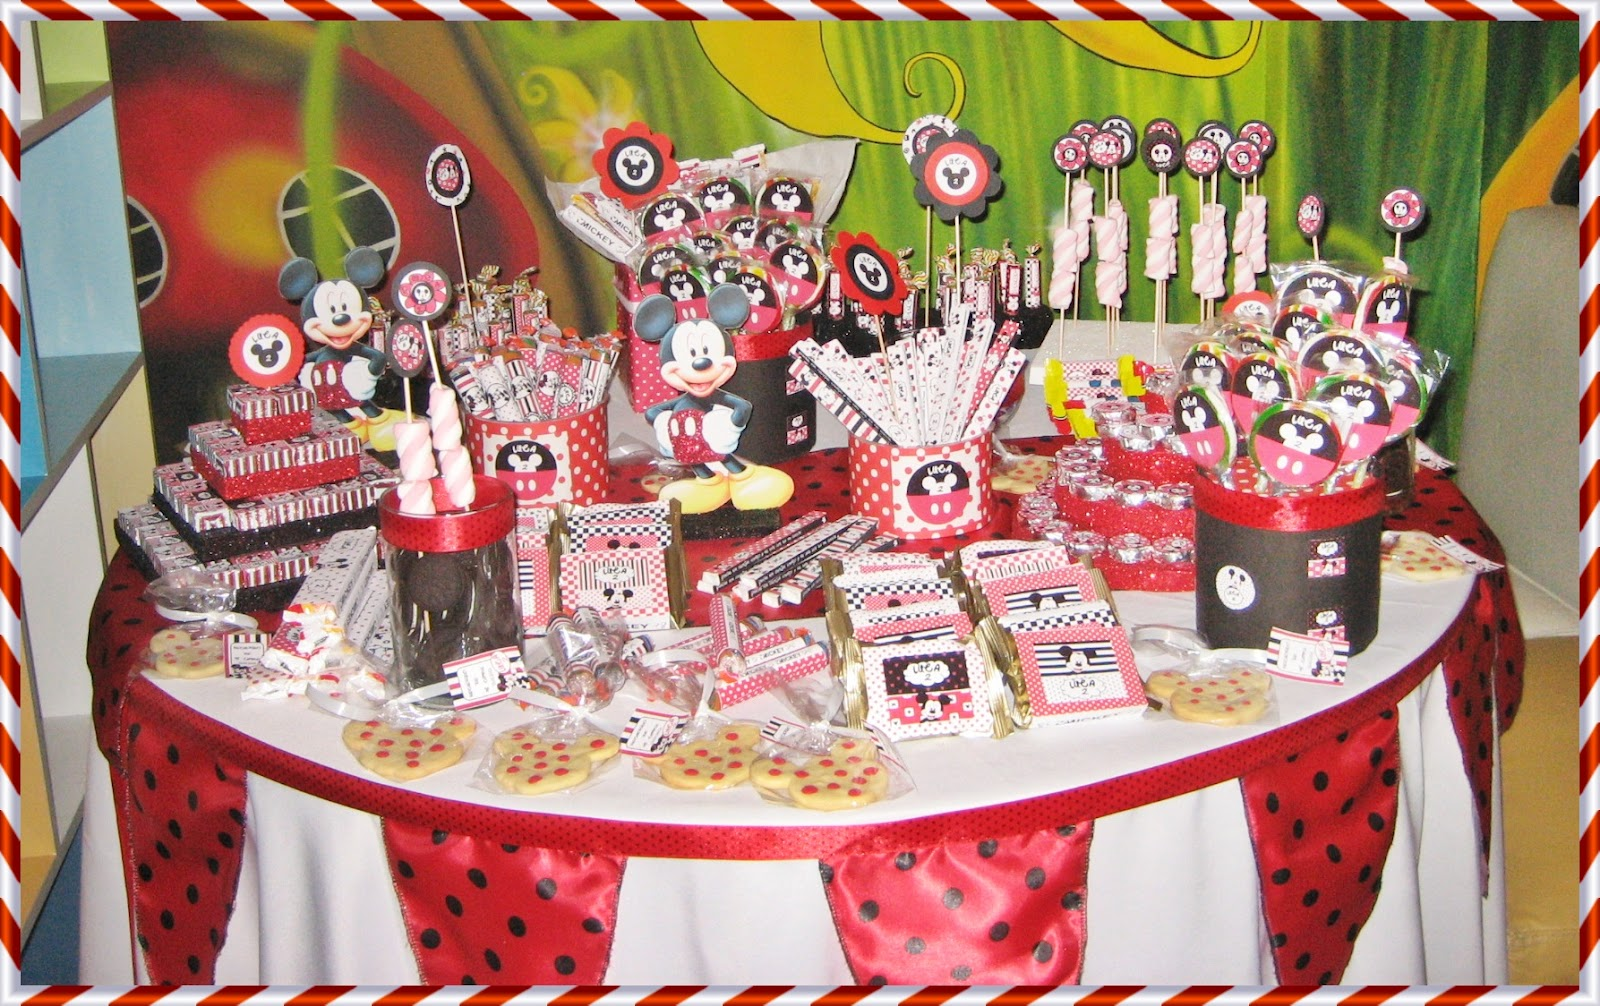 26 ideas muy faciles para armar tu mesa dulce de mickey for Decoracion postres